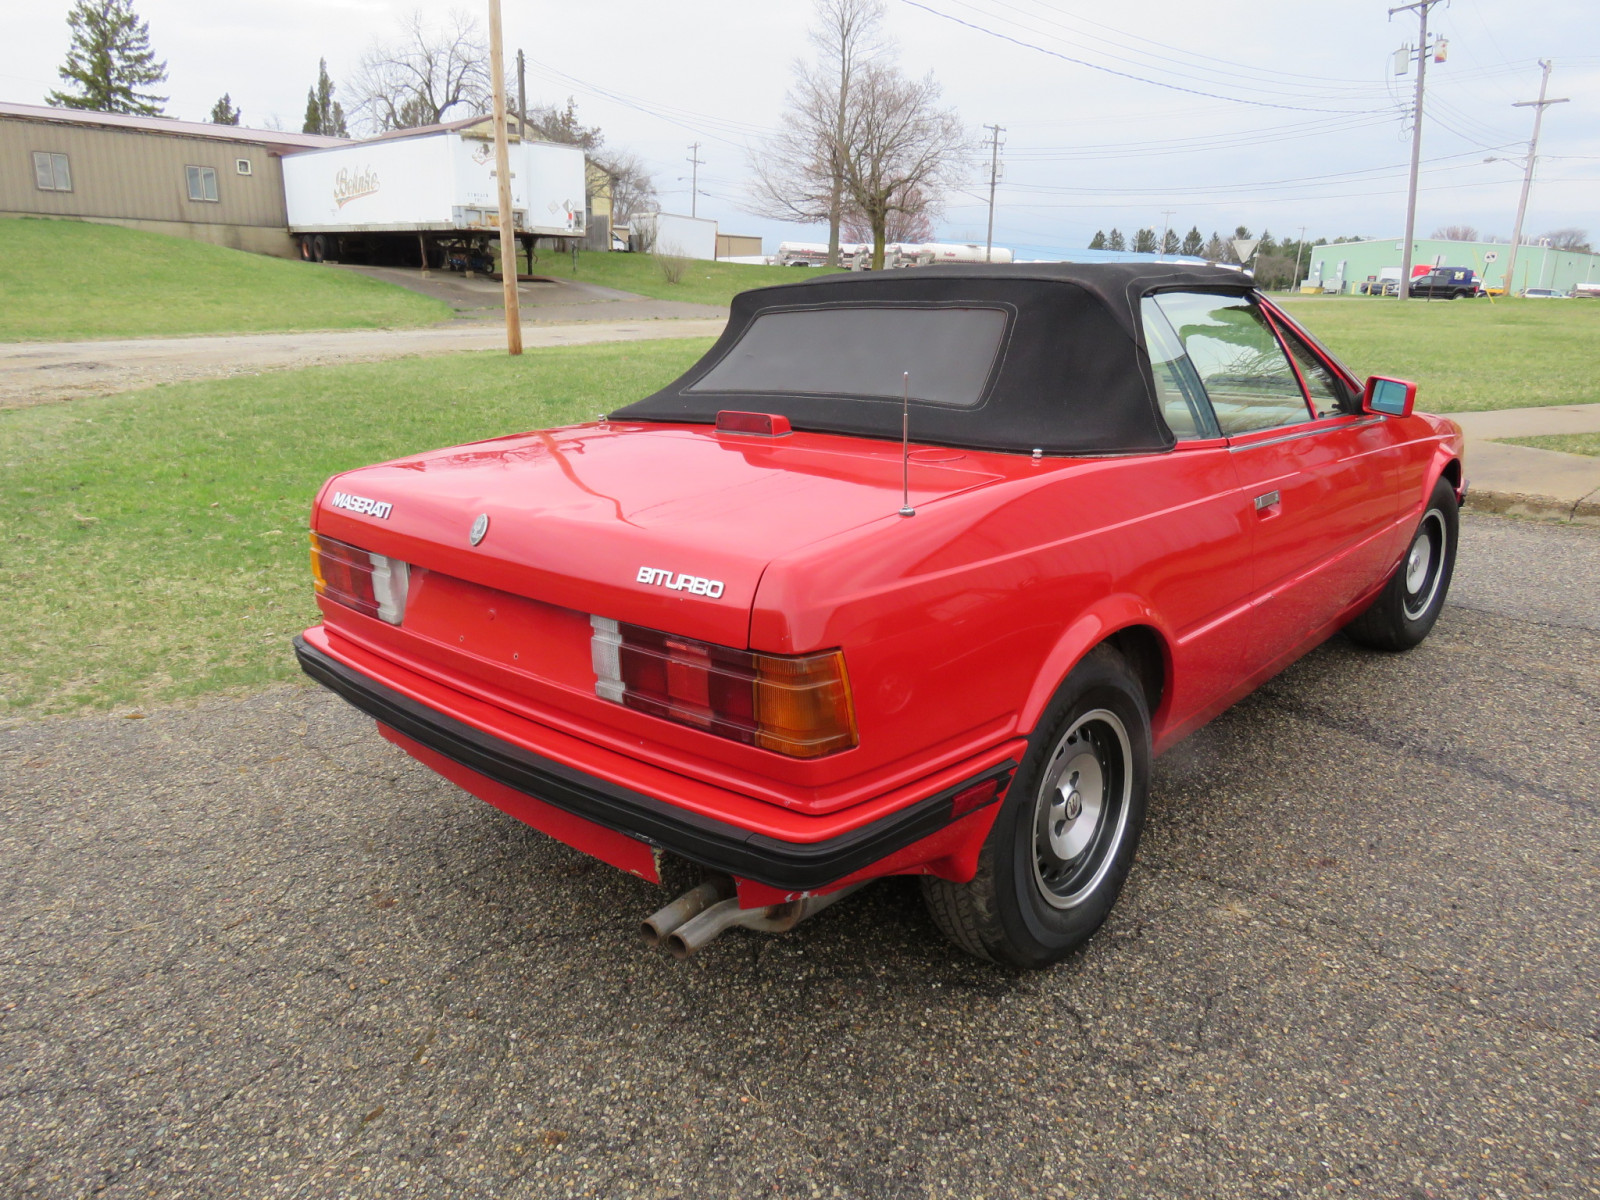 1986 MaserattiB1 Turbo Convertible - Image 5